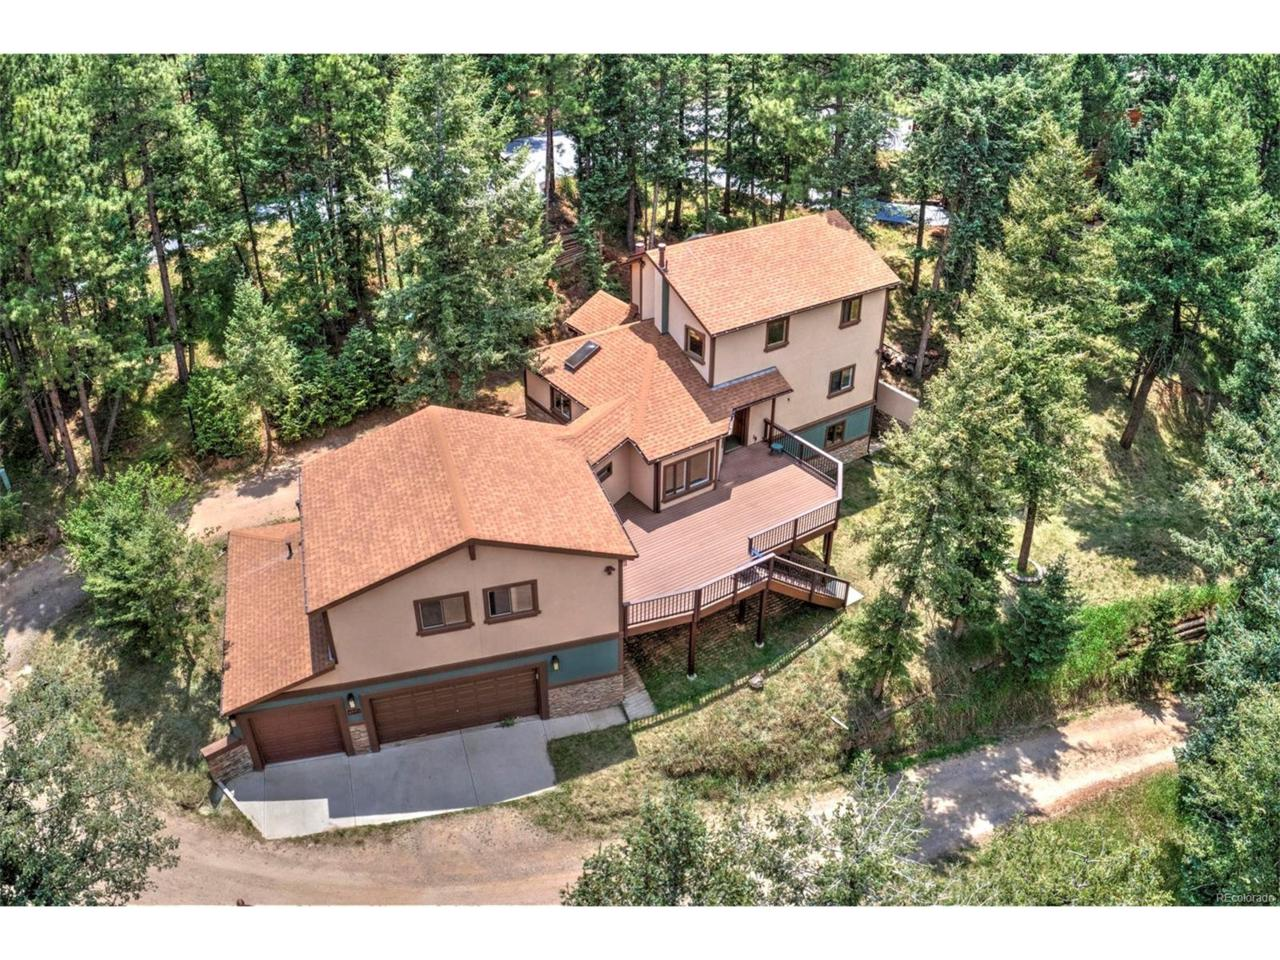 4975 Bonita Park Trail, Evergreen, CO 80439 (MLS #4824450) :: 8z Real Estate